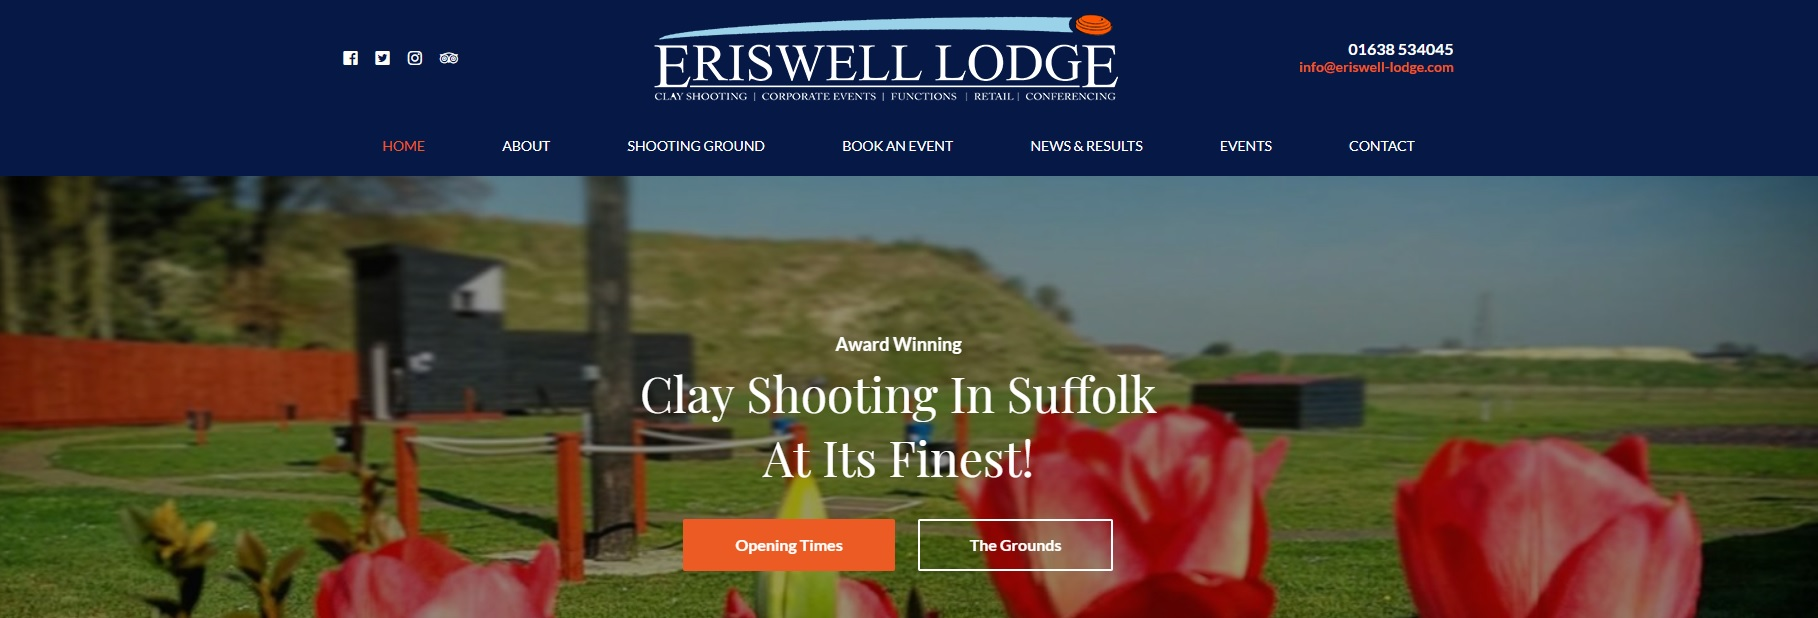 Eriswell Lodge New Website Launched!